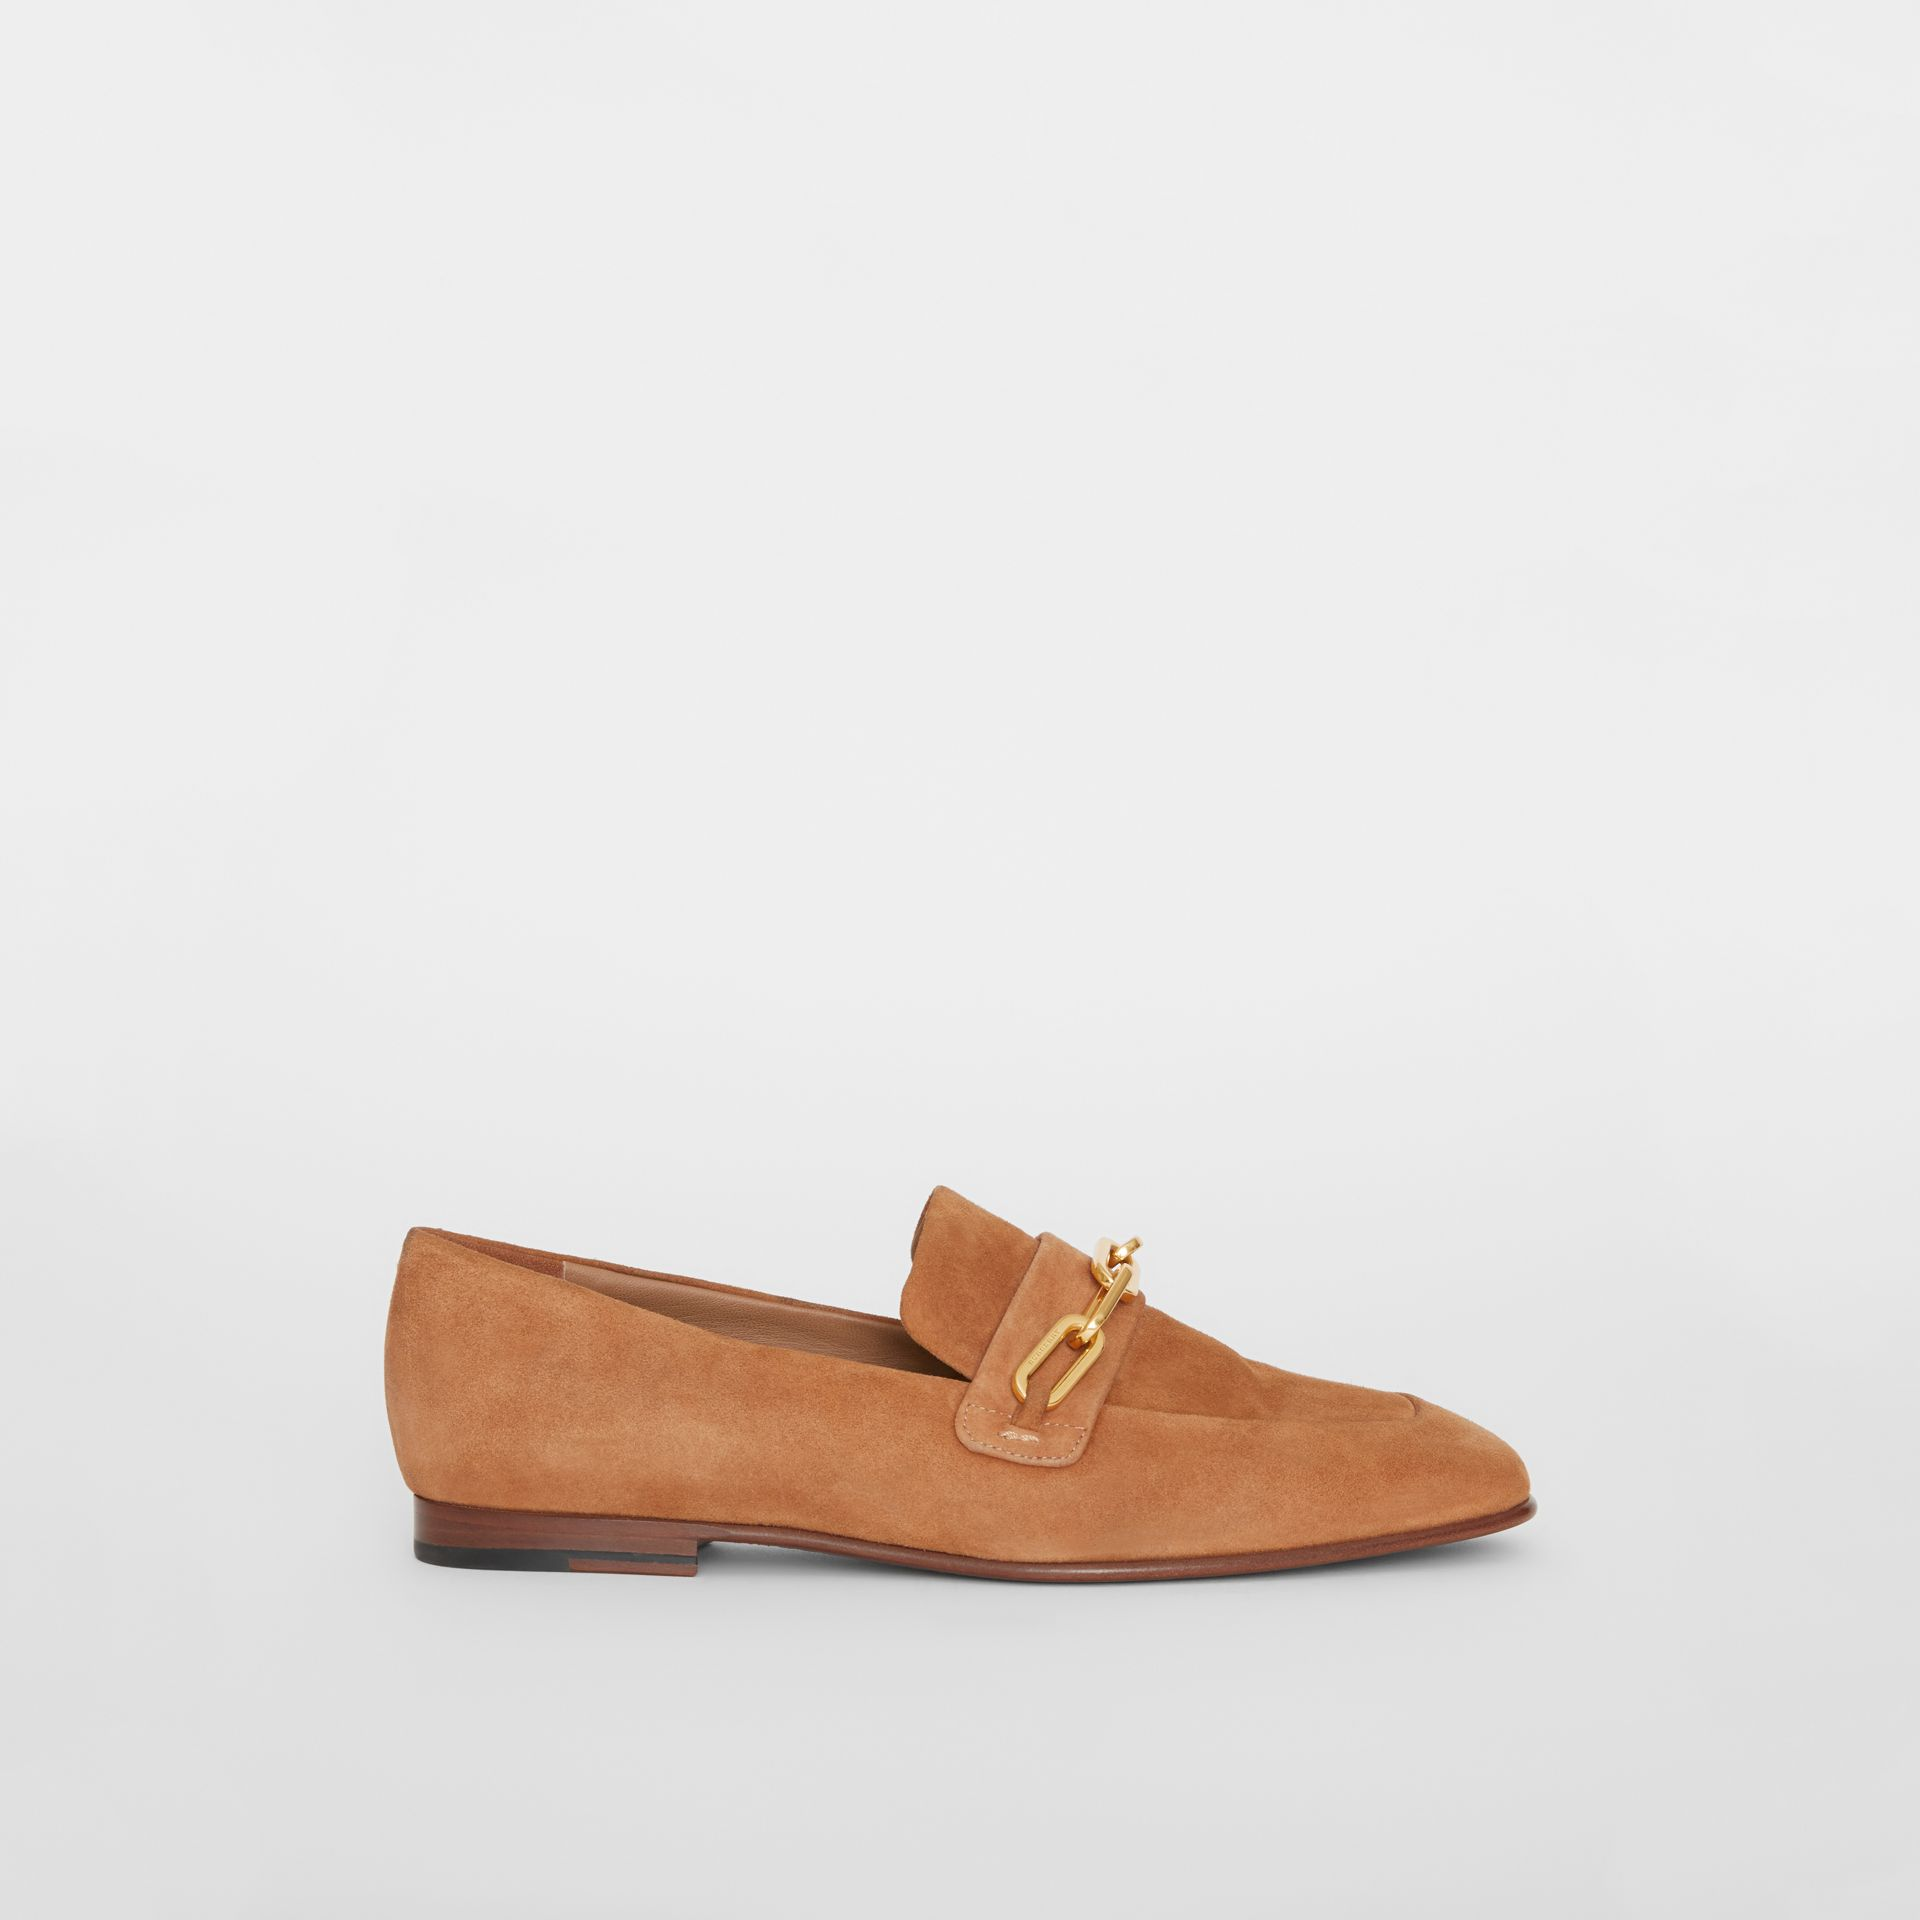 Link Detail Suede Loafers in Mid Camel - Women | Burberry - gallery image 5